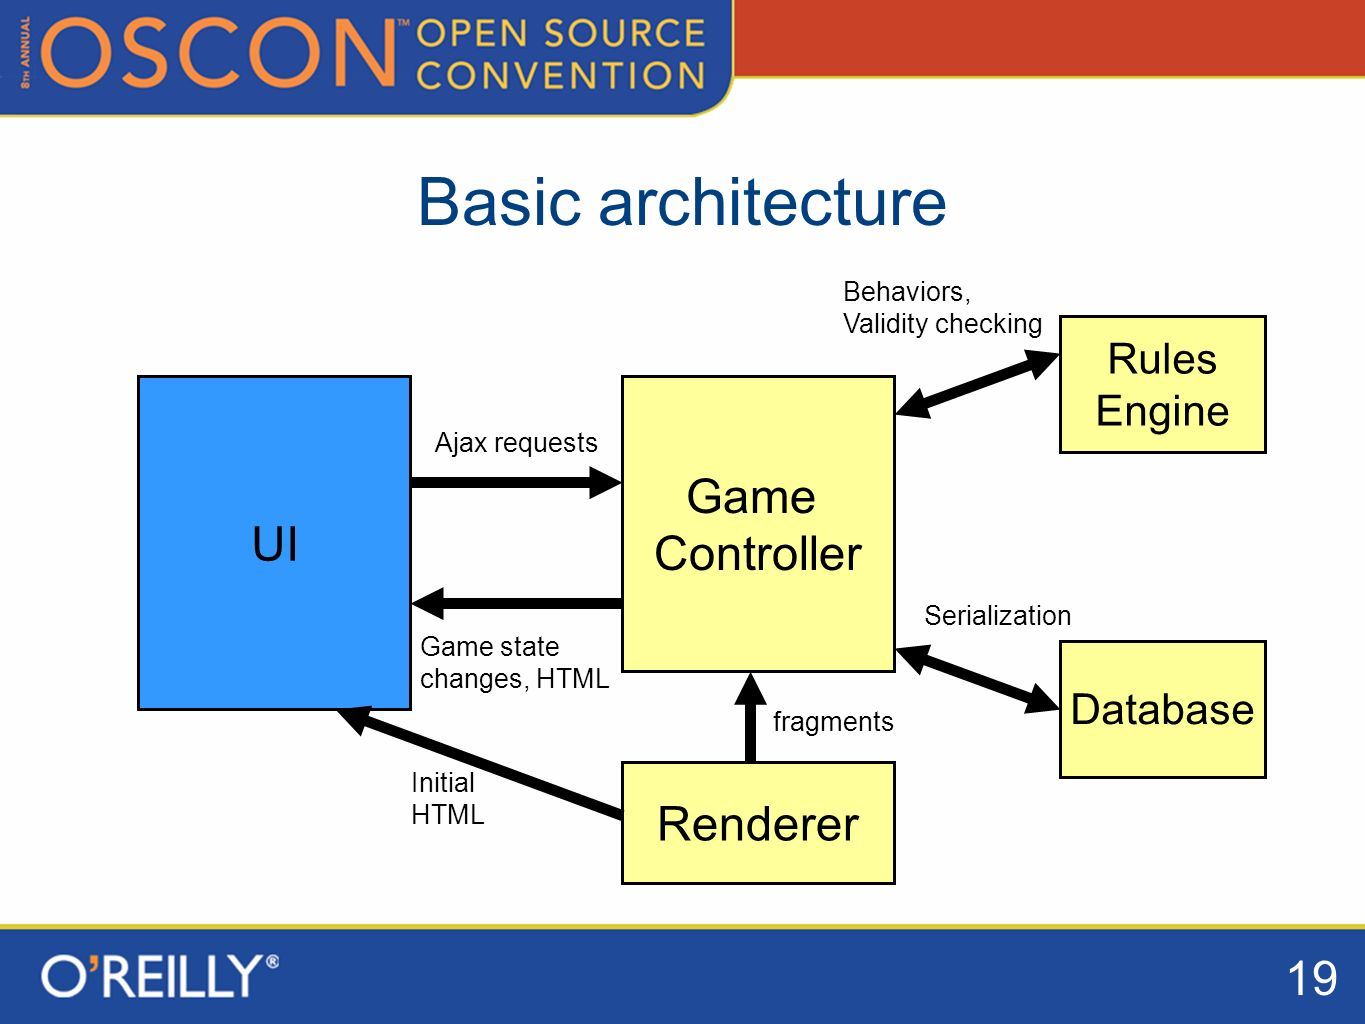 19 Basic architecture UI Rules Engine Game Controller Database Ajax requests Game state changes, HTML Serialization Behaviors, Validity checking Renderer Initial HTML fragments